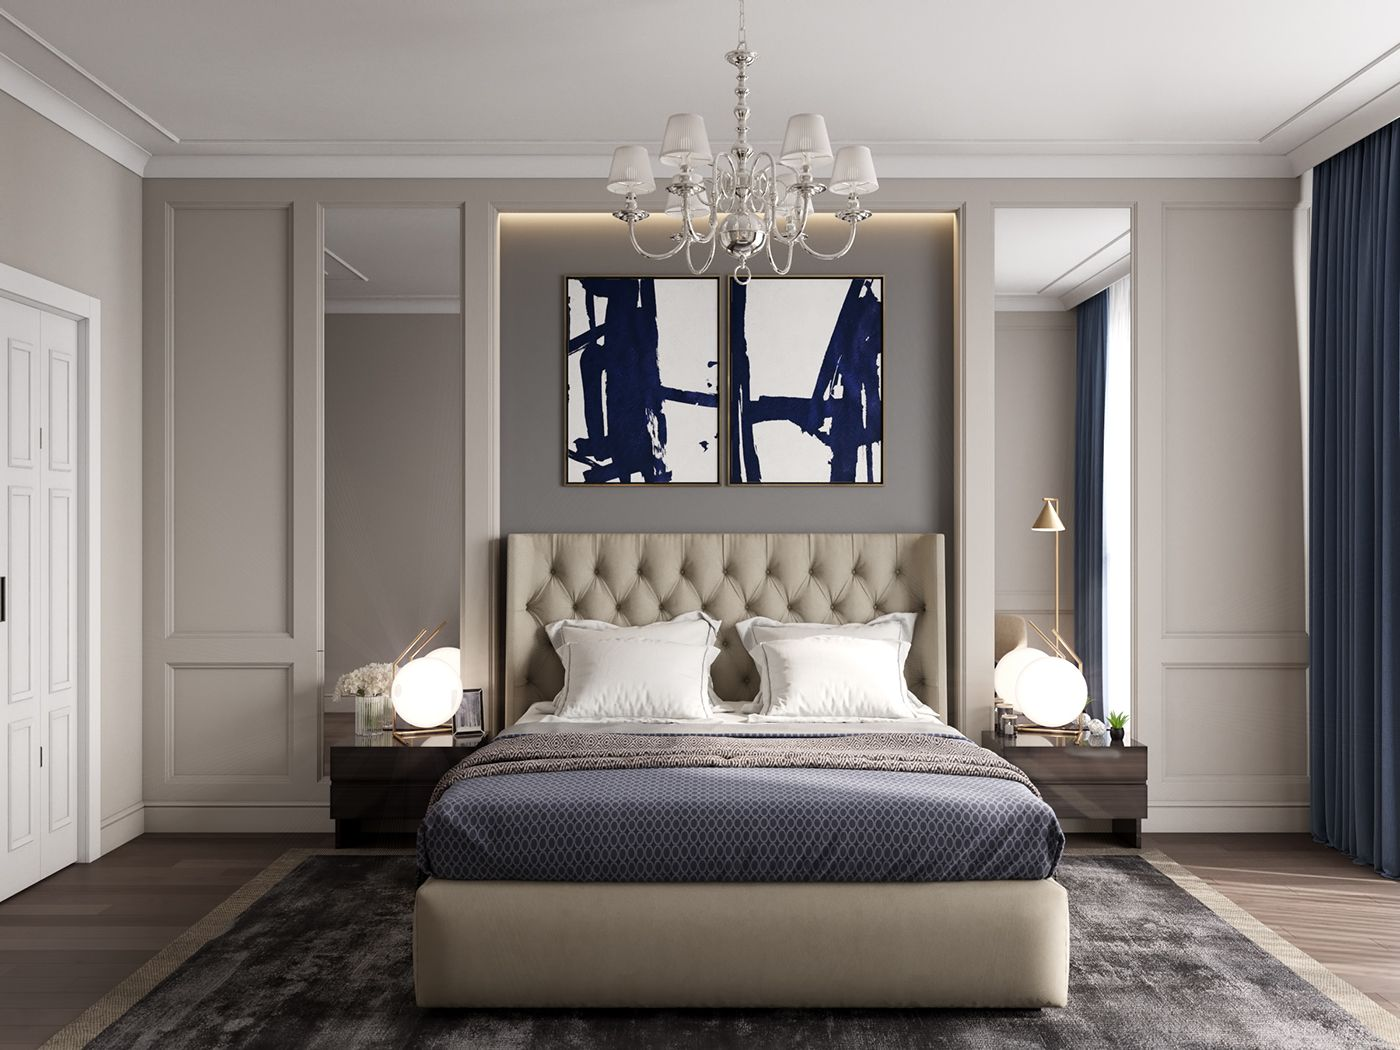 modern classics in the interior on behance modern on home interior design bedroom id=84228